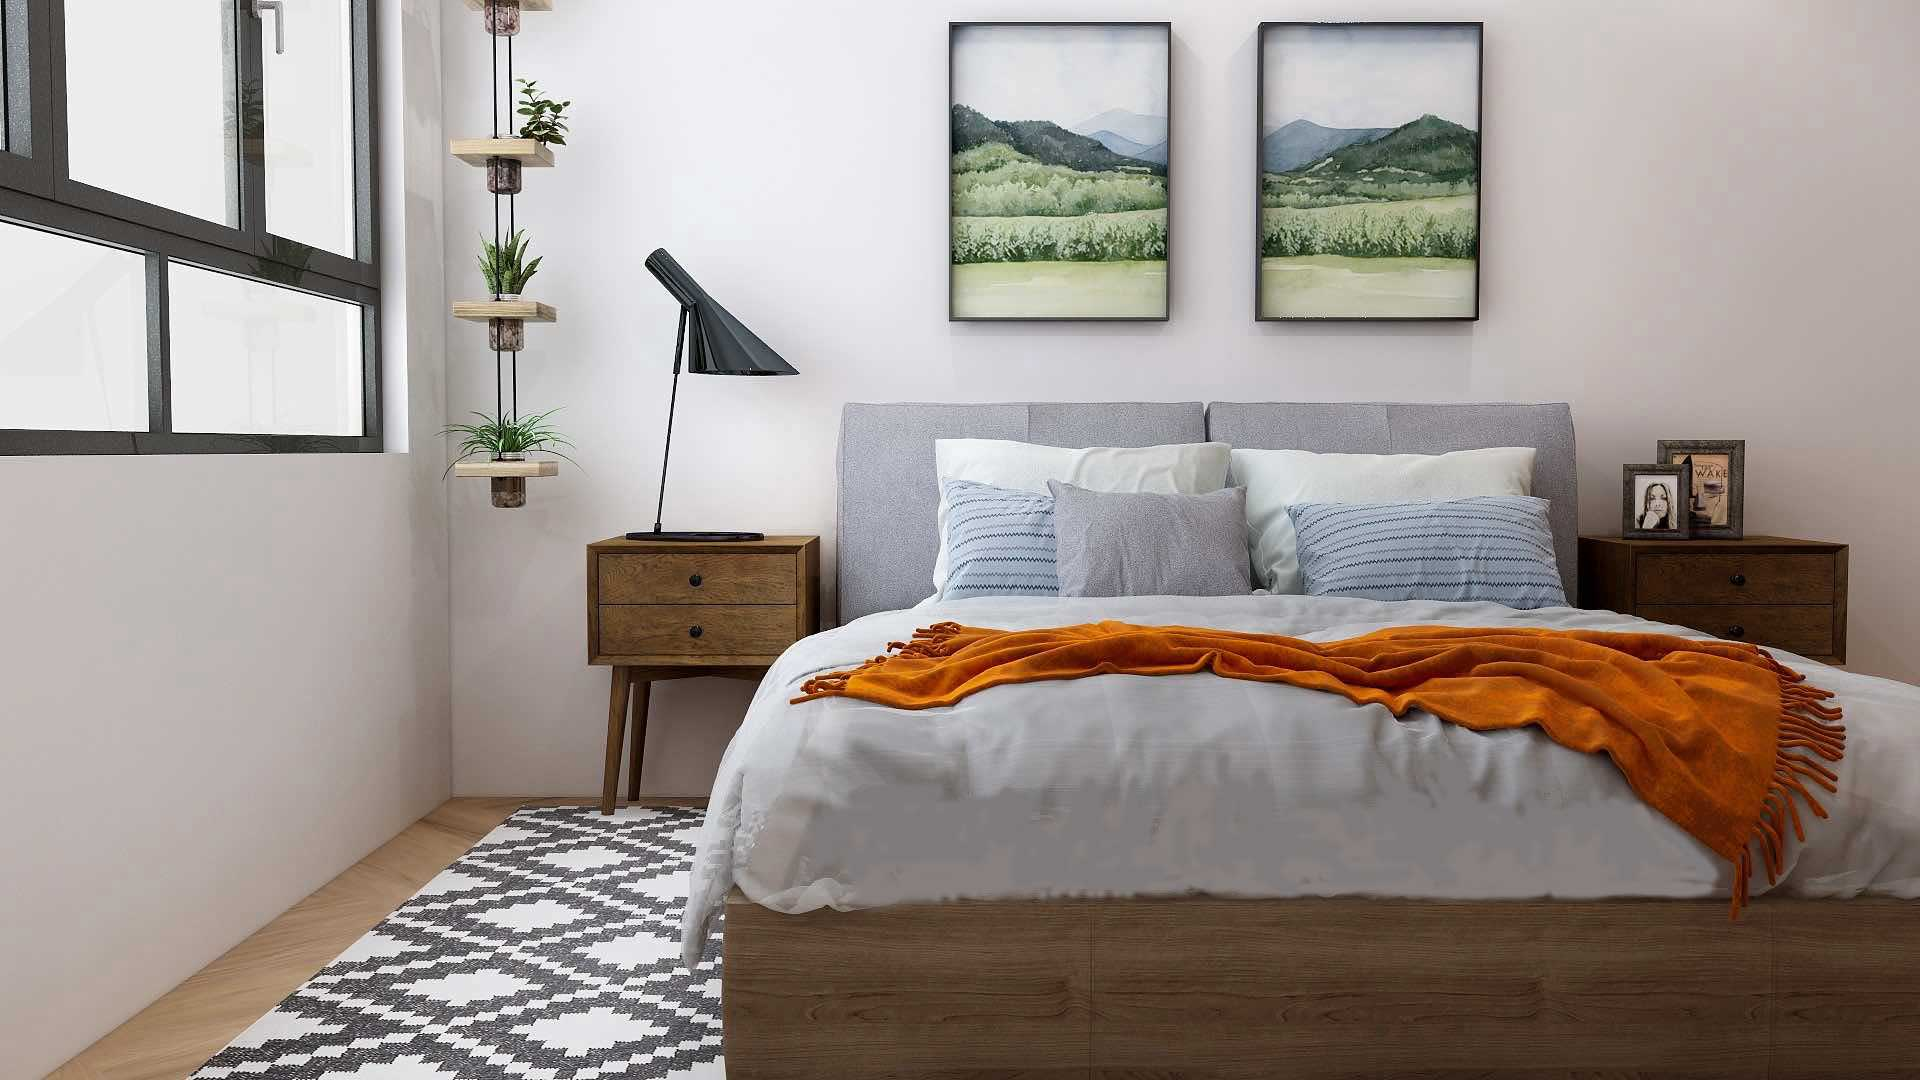 MCM bedroom furniture with clean lines on top of a geometric patterned rug